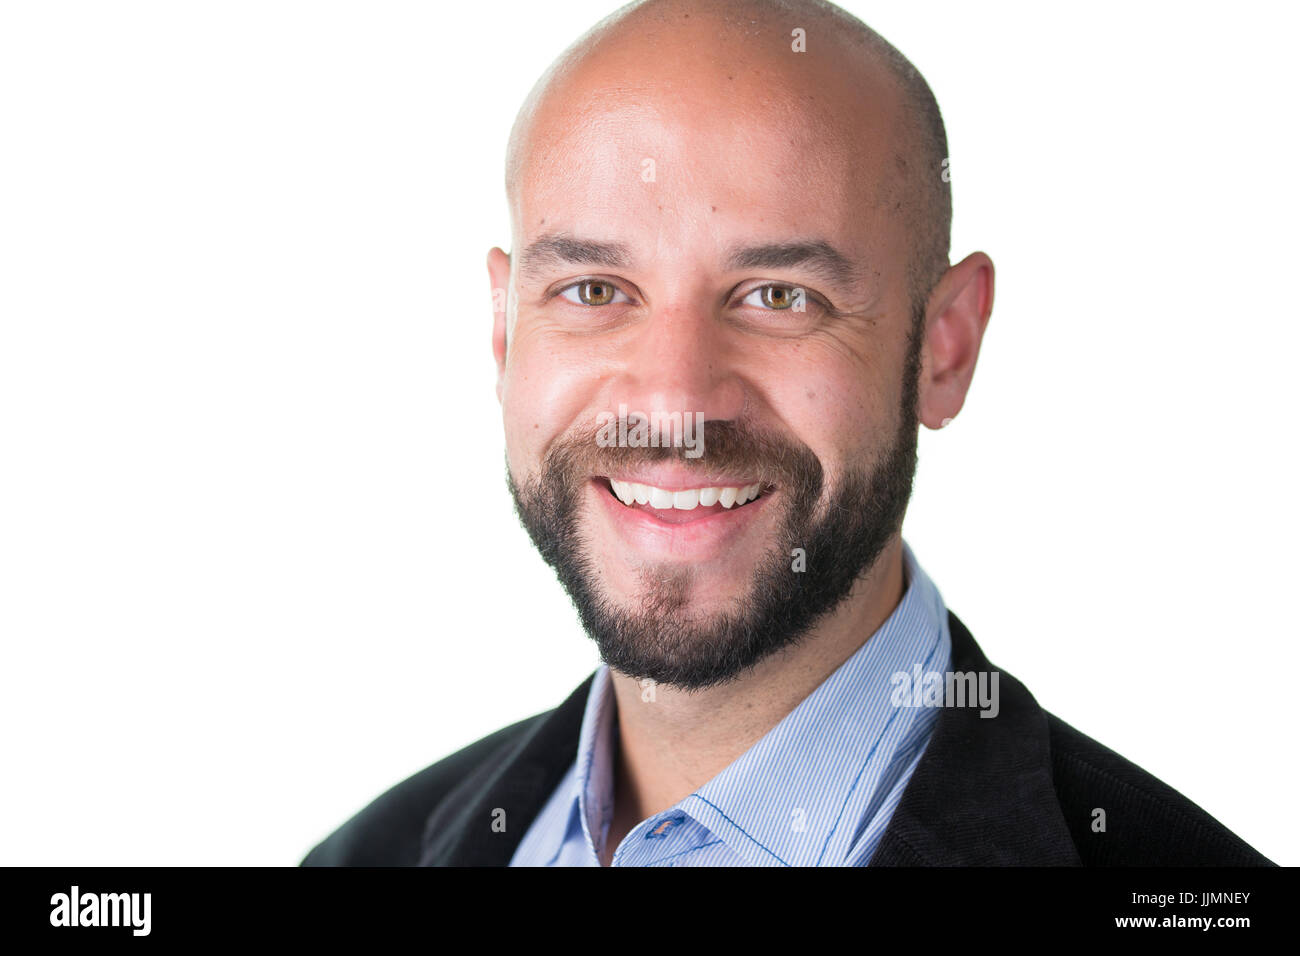 Closeup portrait, professional man with goatee beard in dark blazer and blue shirt, isolated white background - Stock Image